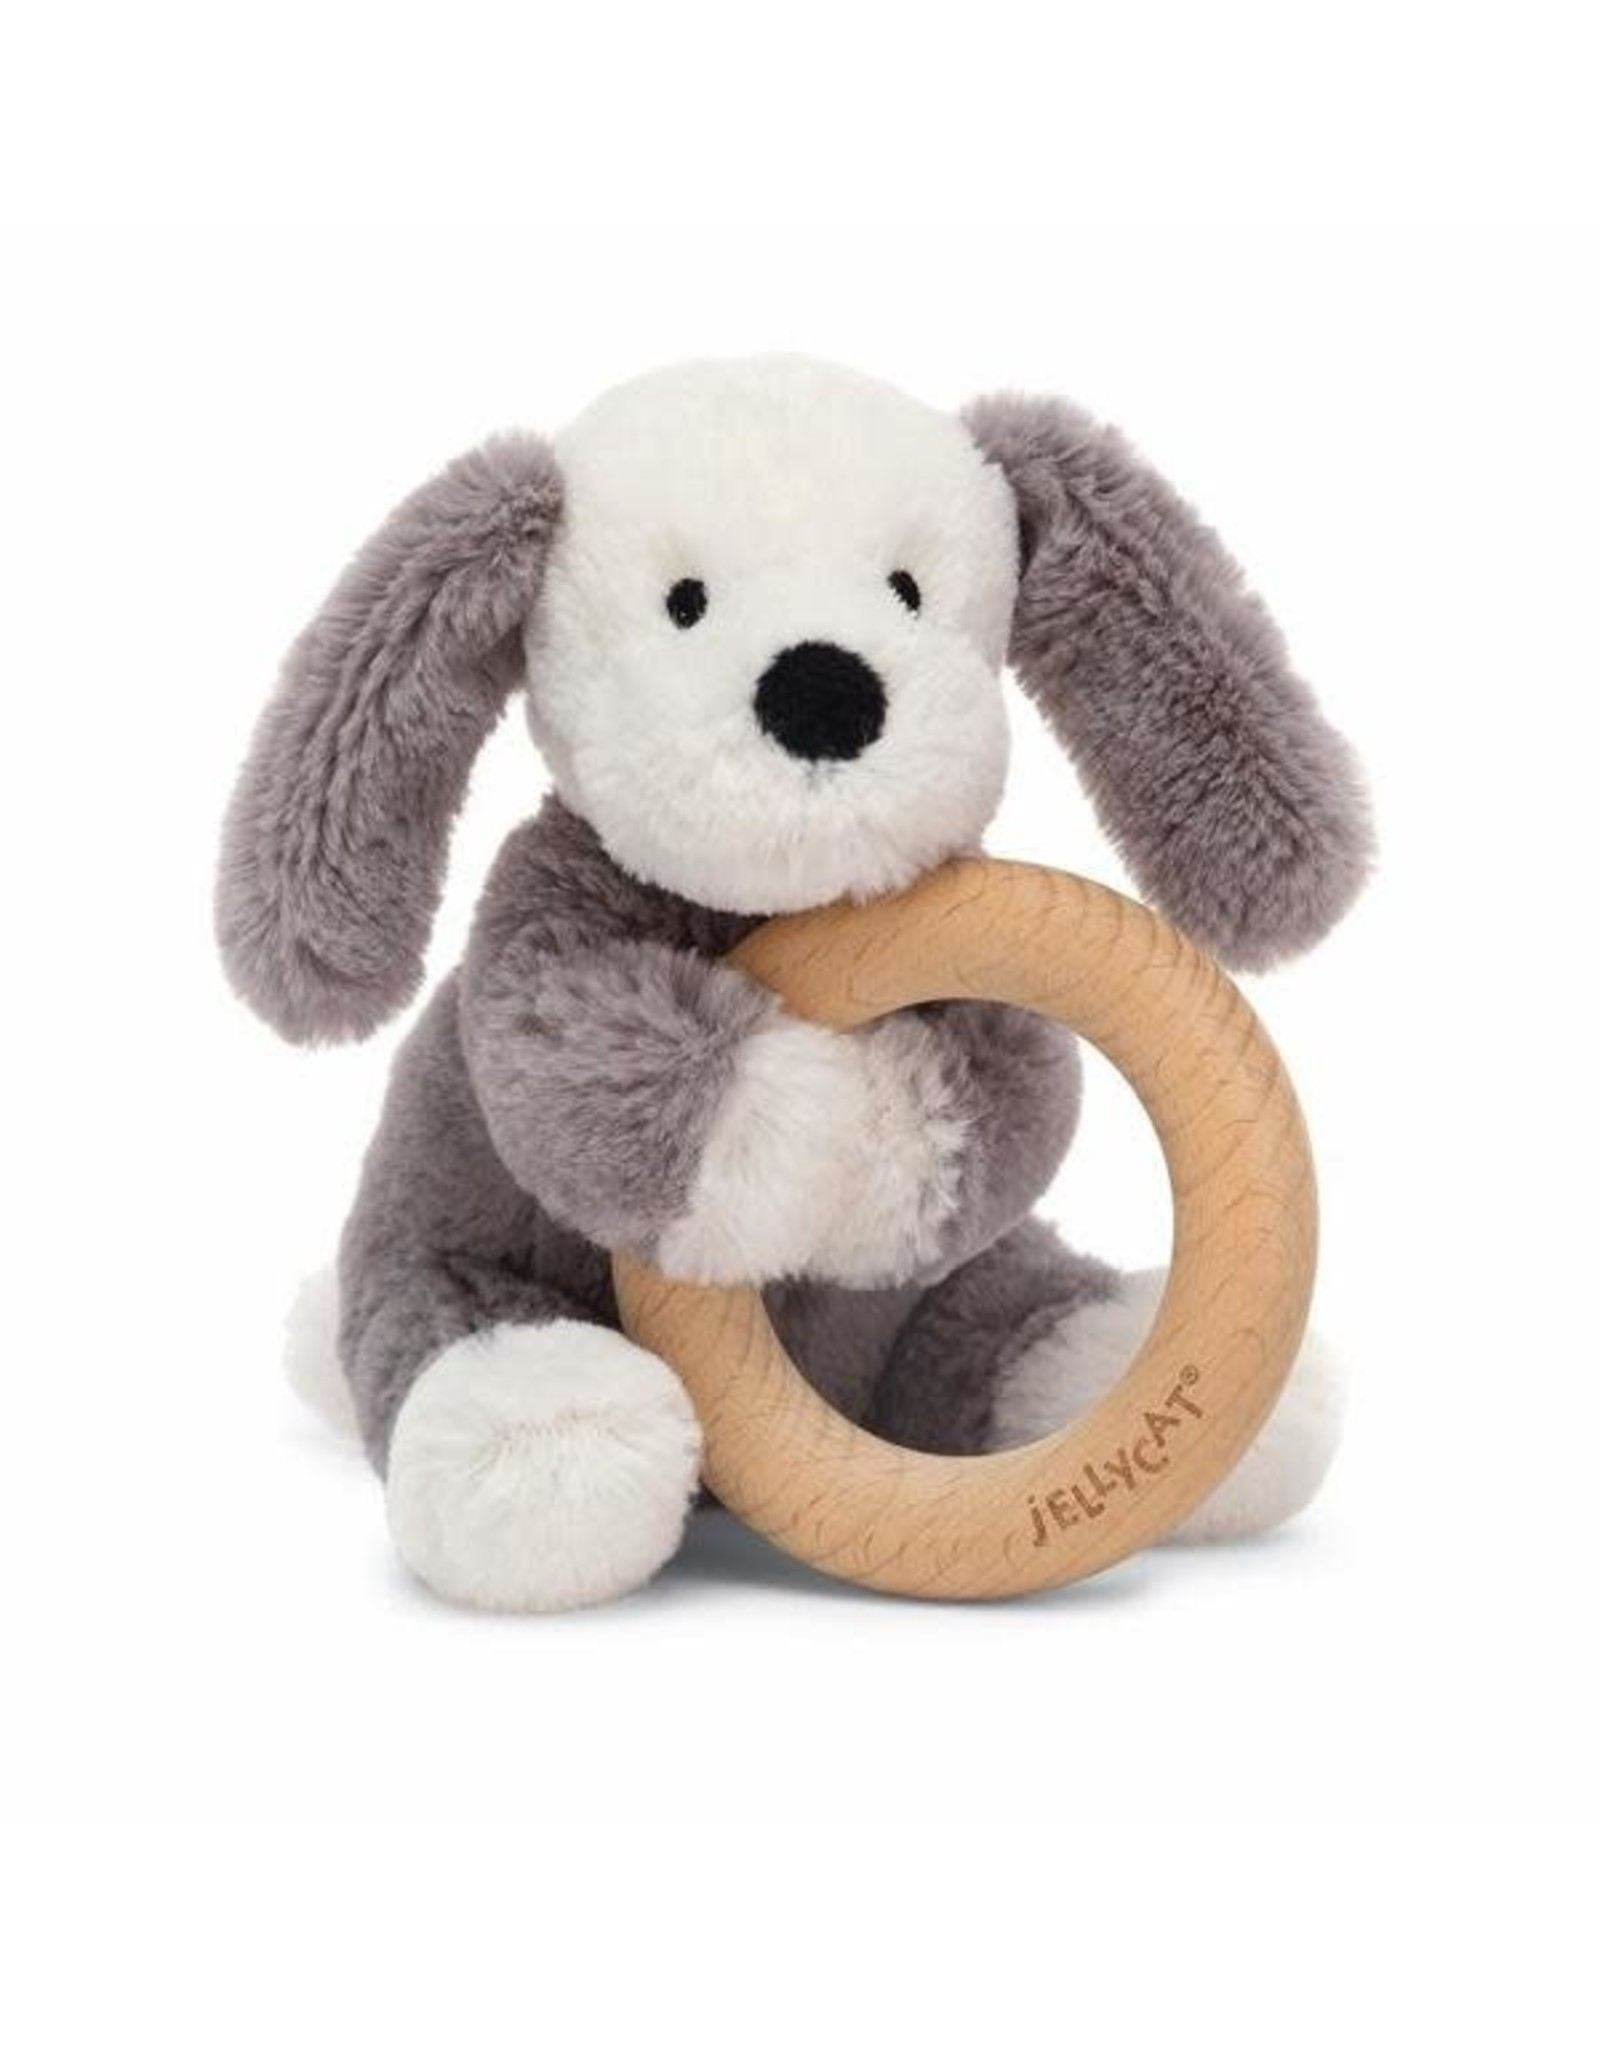 Jelly Cat Smudge Puppy Wooden Ring Toy